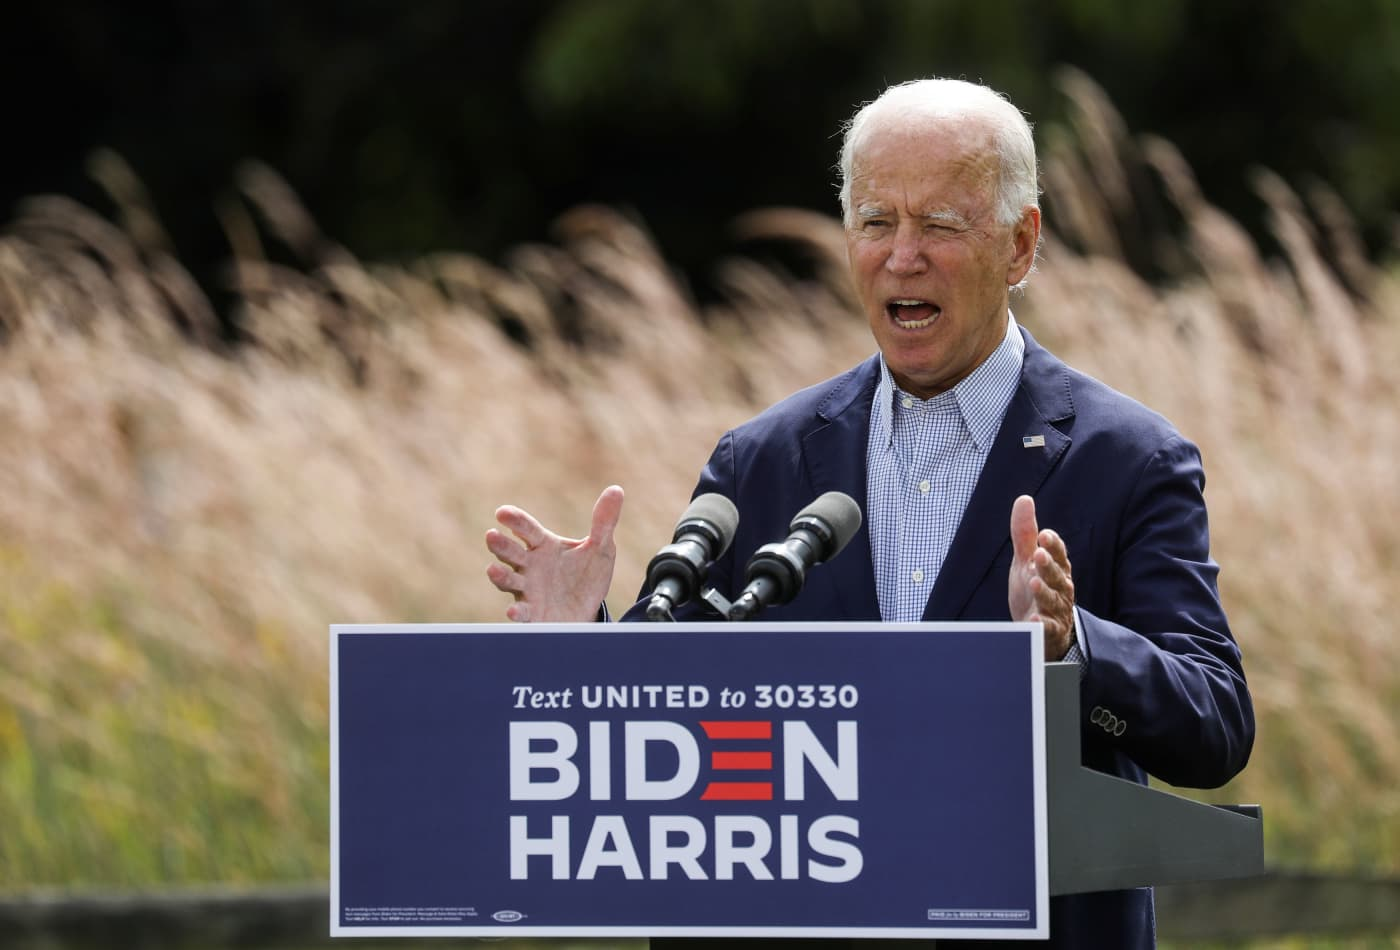 Joe Biden's climate change agenda faces an uncertain future in the Senate